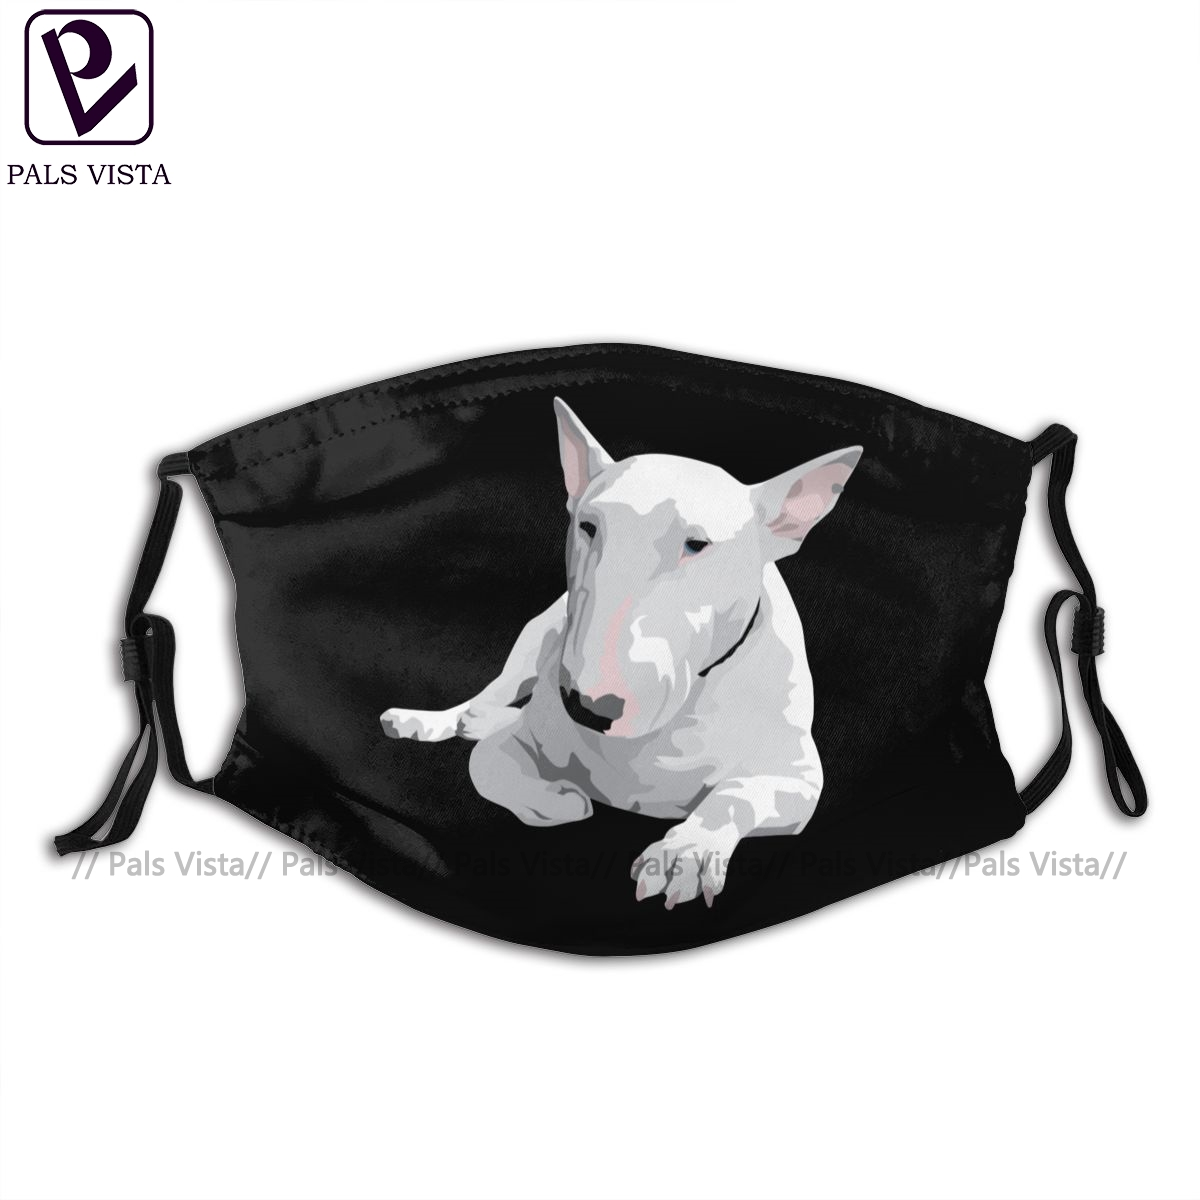 Bull Terrier Mouth Face Mask English Bull Terrier Facial Mask Funny Fashion With 2 Filters For Adult